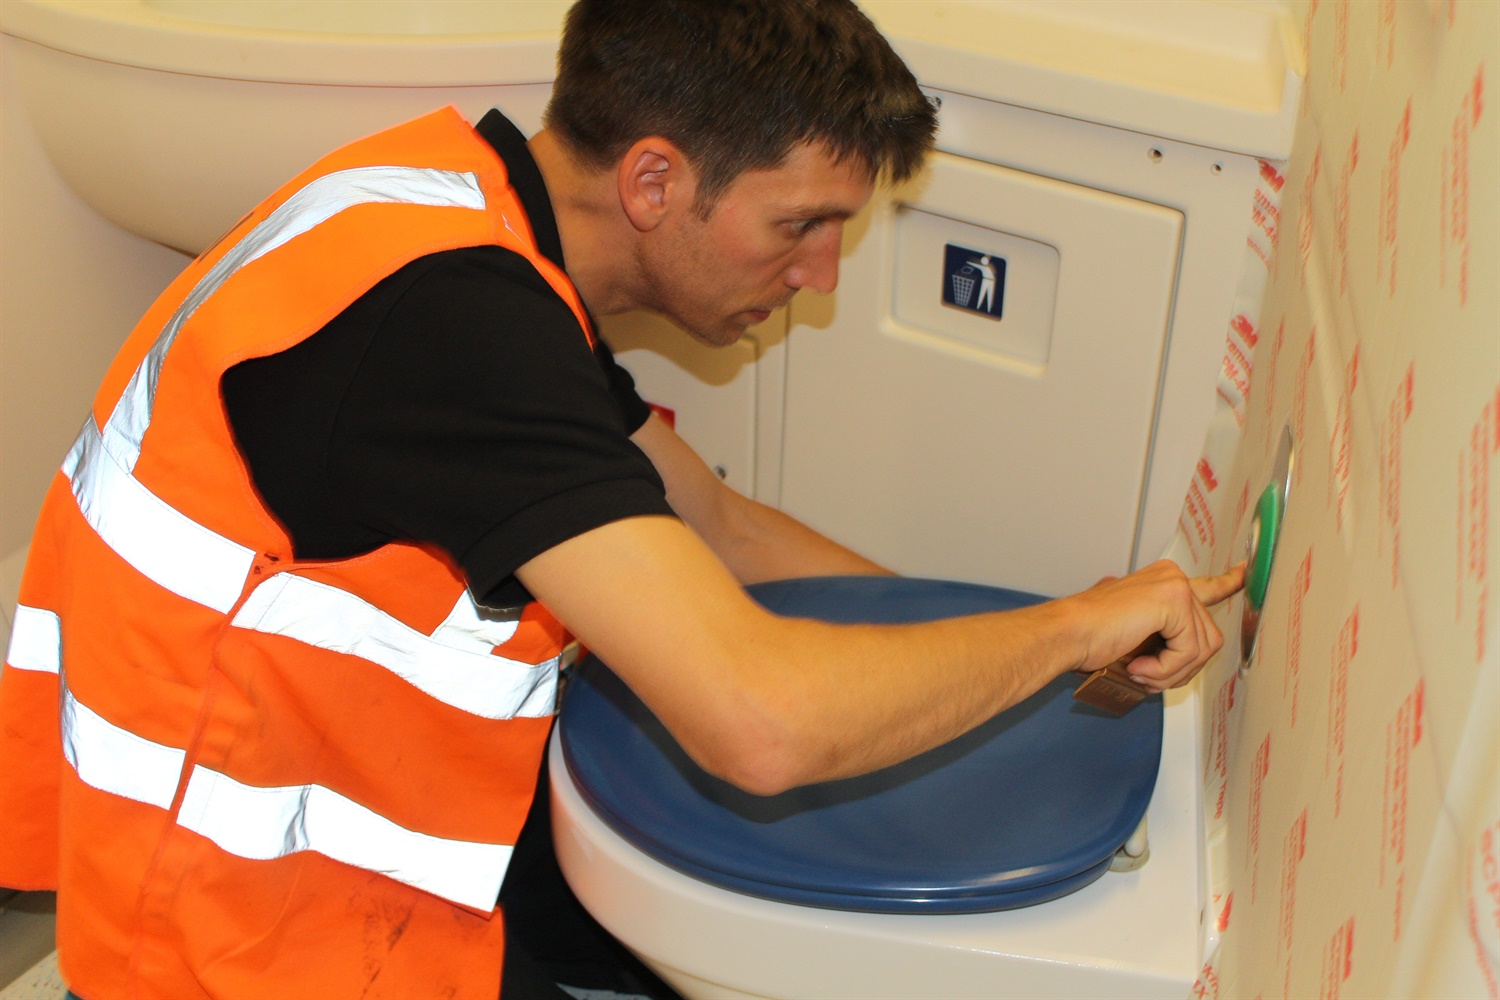 Worker refurbishing and putting screen prints on Class 375 train toilet